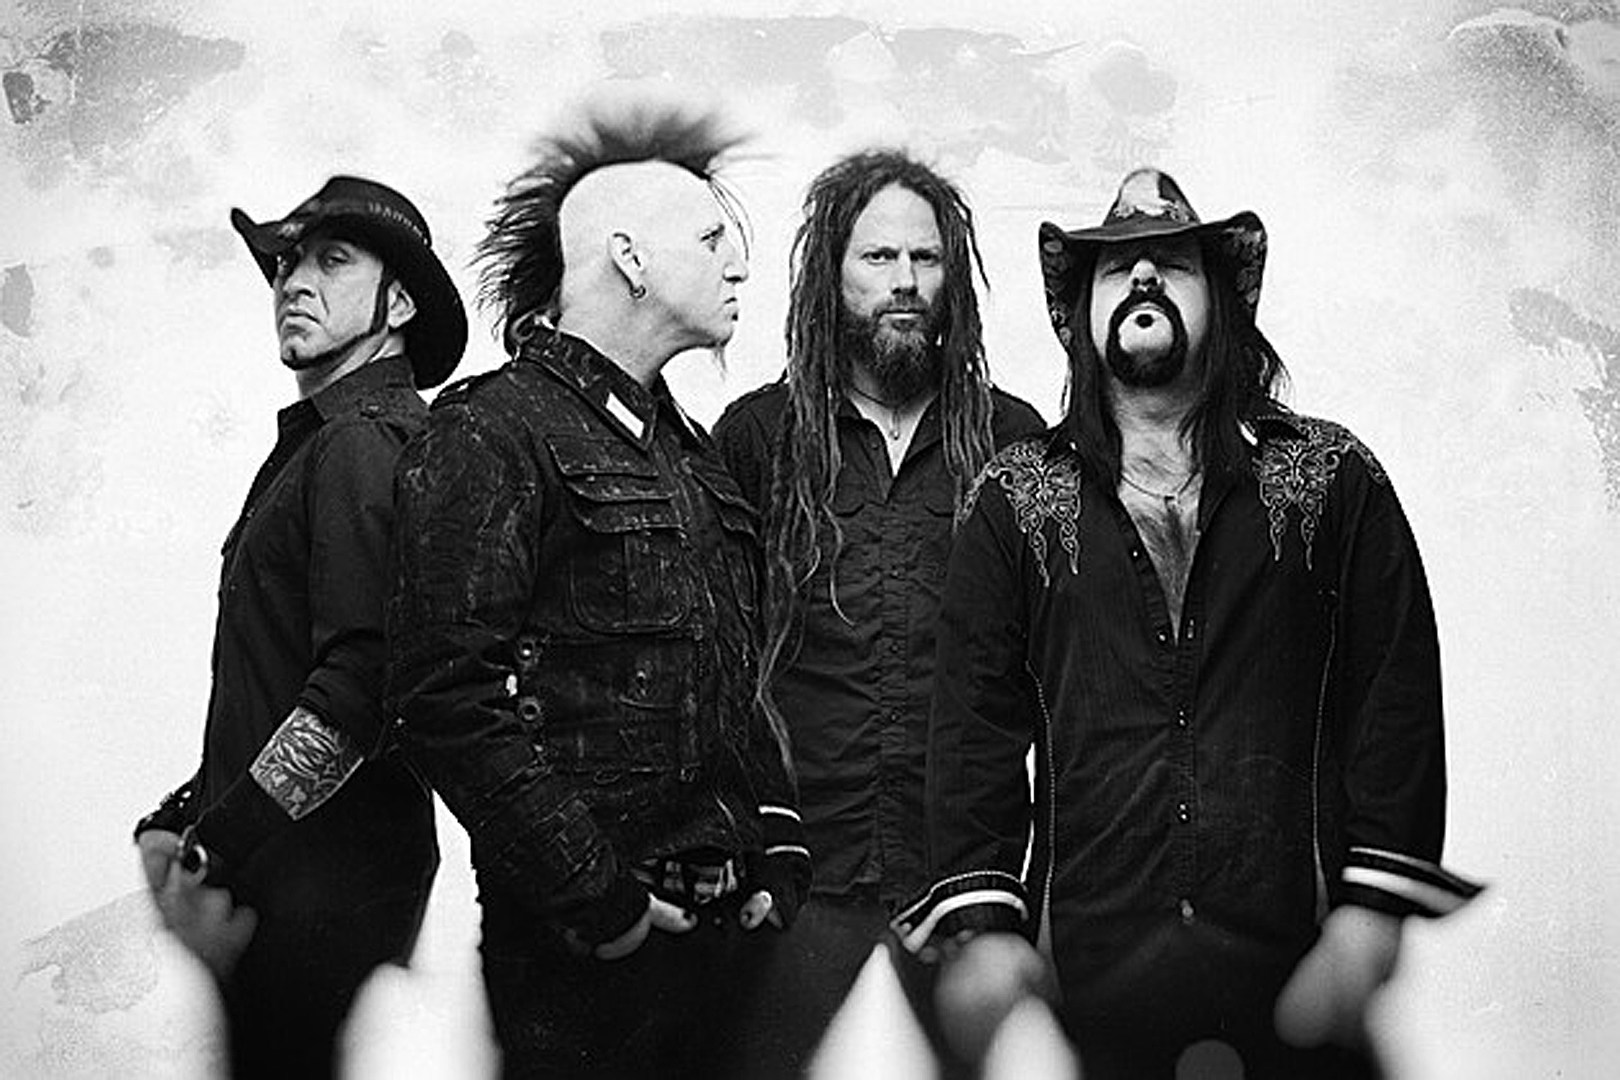 Hellyeah's Tom Maxwell: 'Vinnie Paul Is Greatly Loved and Missed, But His Music Will Live Forever'